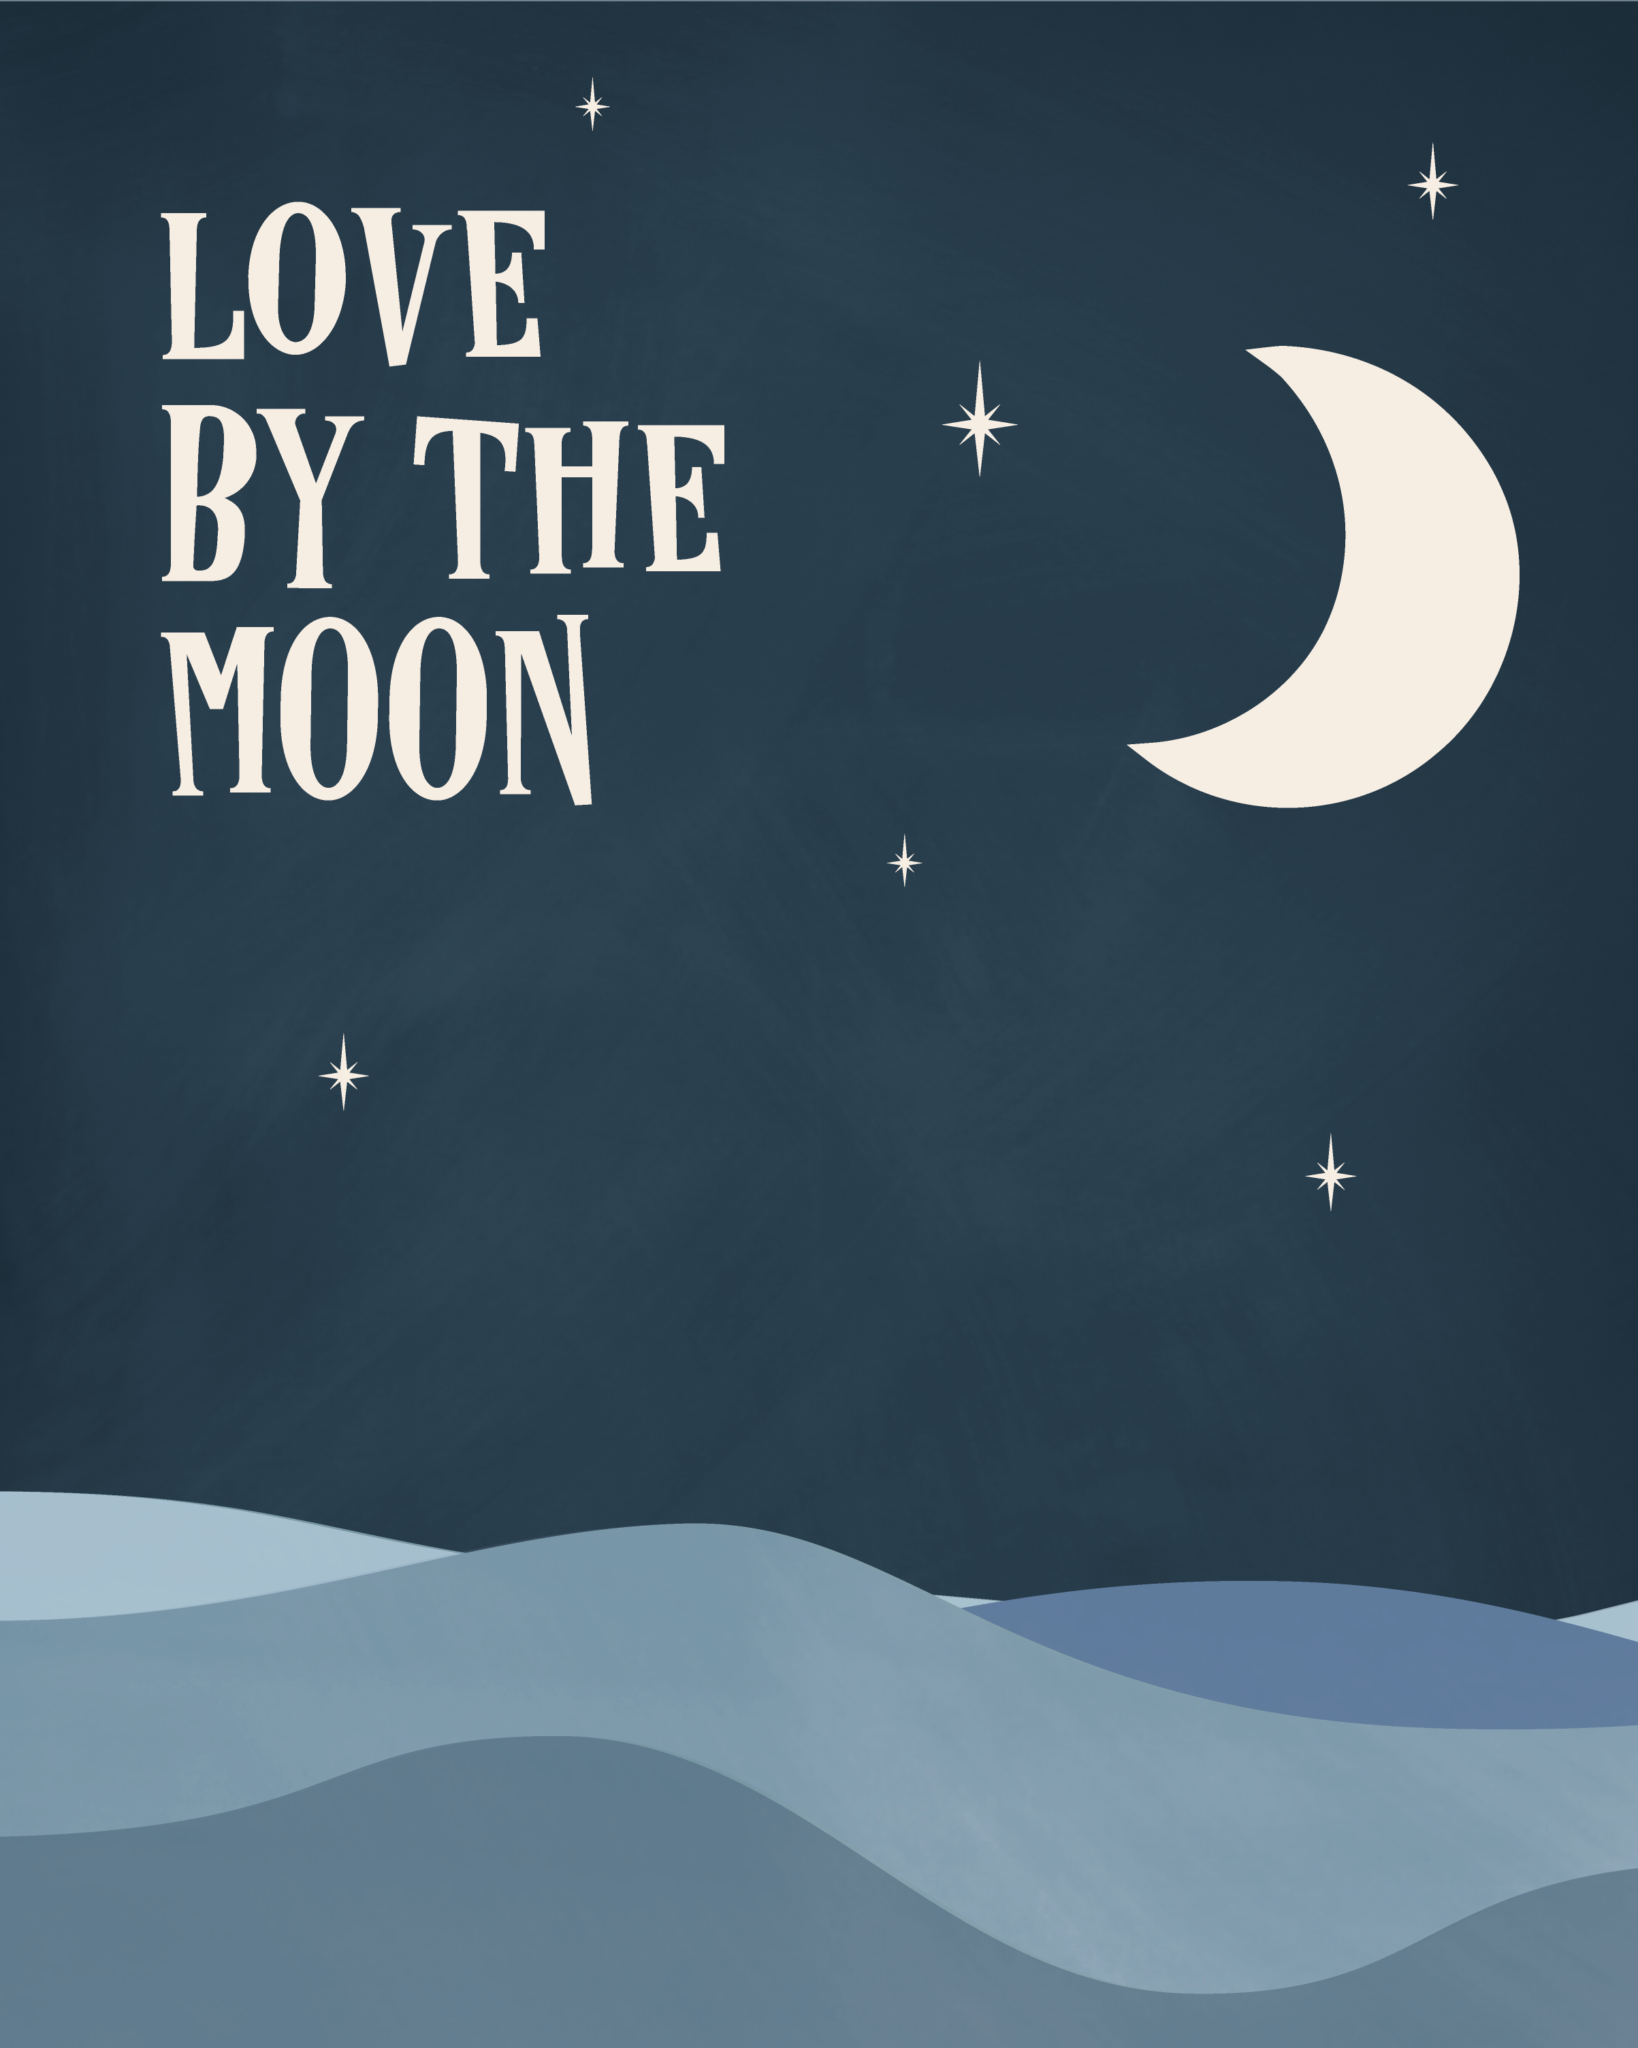 Love-By-The-Moon-1.png